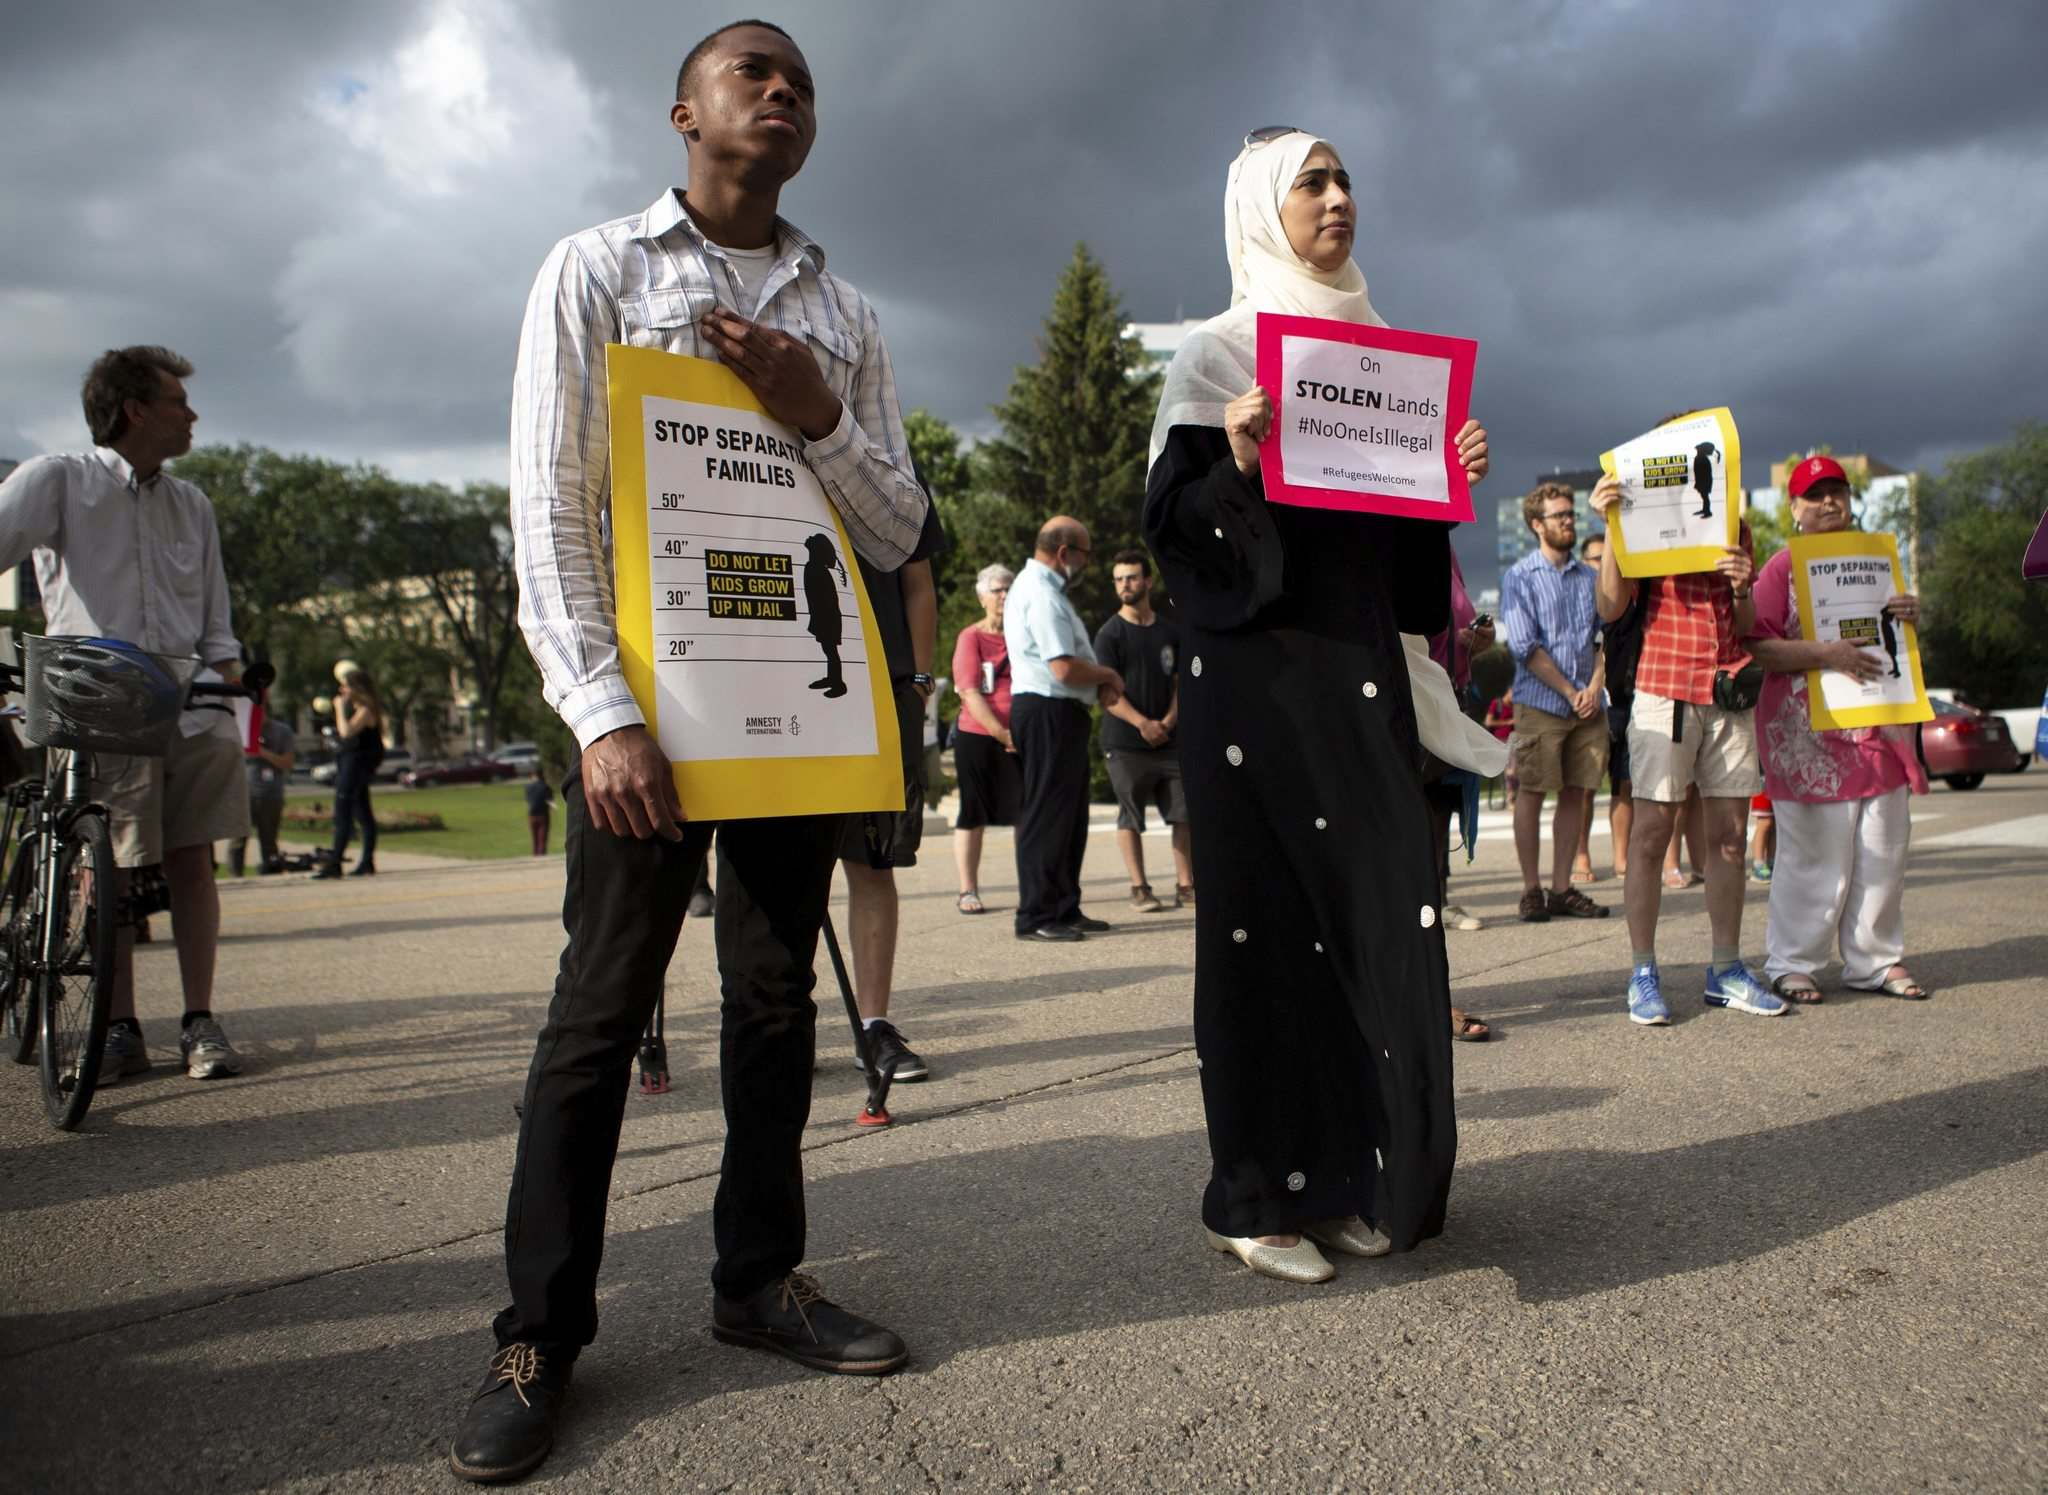 ANDREW RYAN / WINNIPEG FREE PRESS</p><p>Ugonna Chigbo (left) and Nosheen Umar stand together in front of the legislature on Wednesday at a protest against the U.S. policy of separating migrant children from their families.</p>